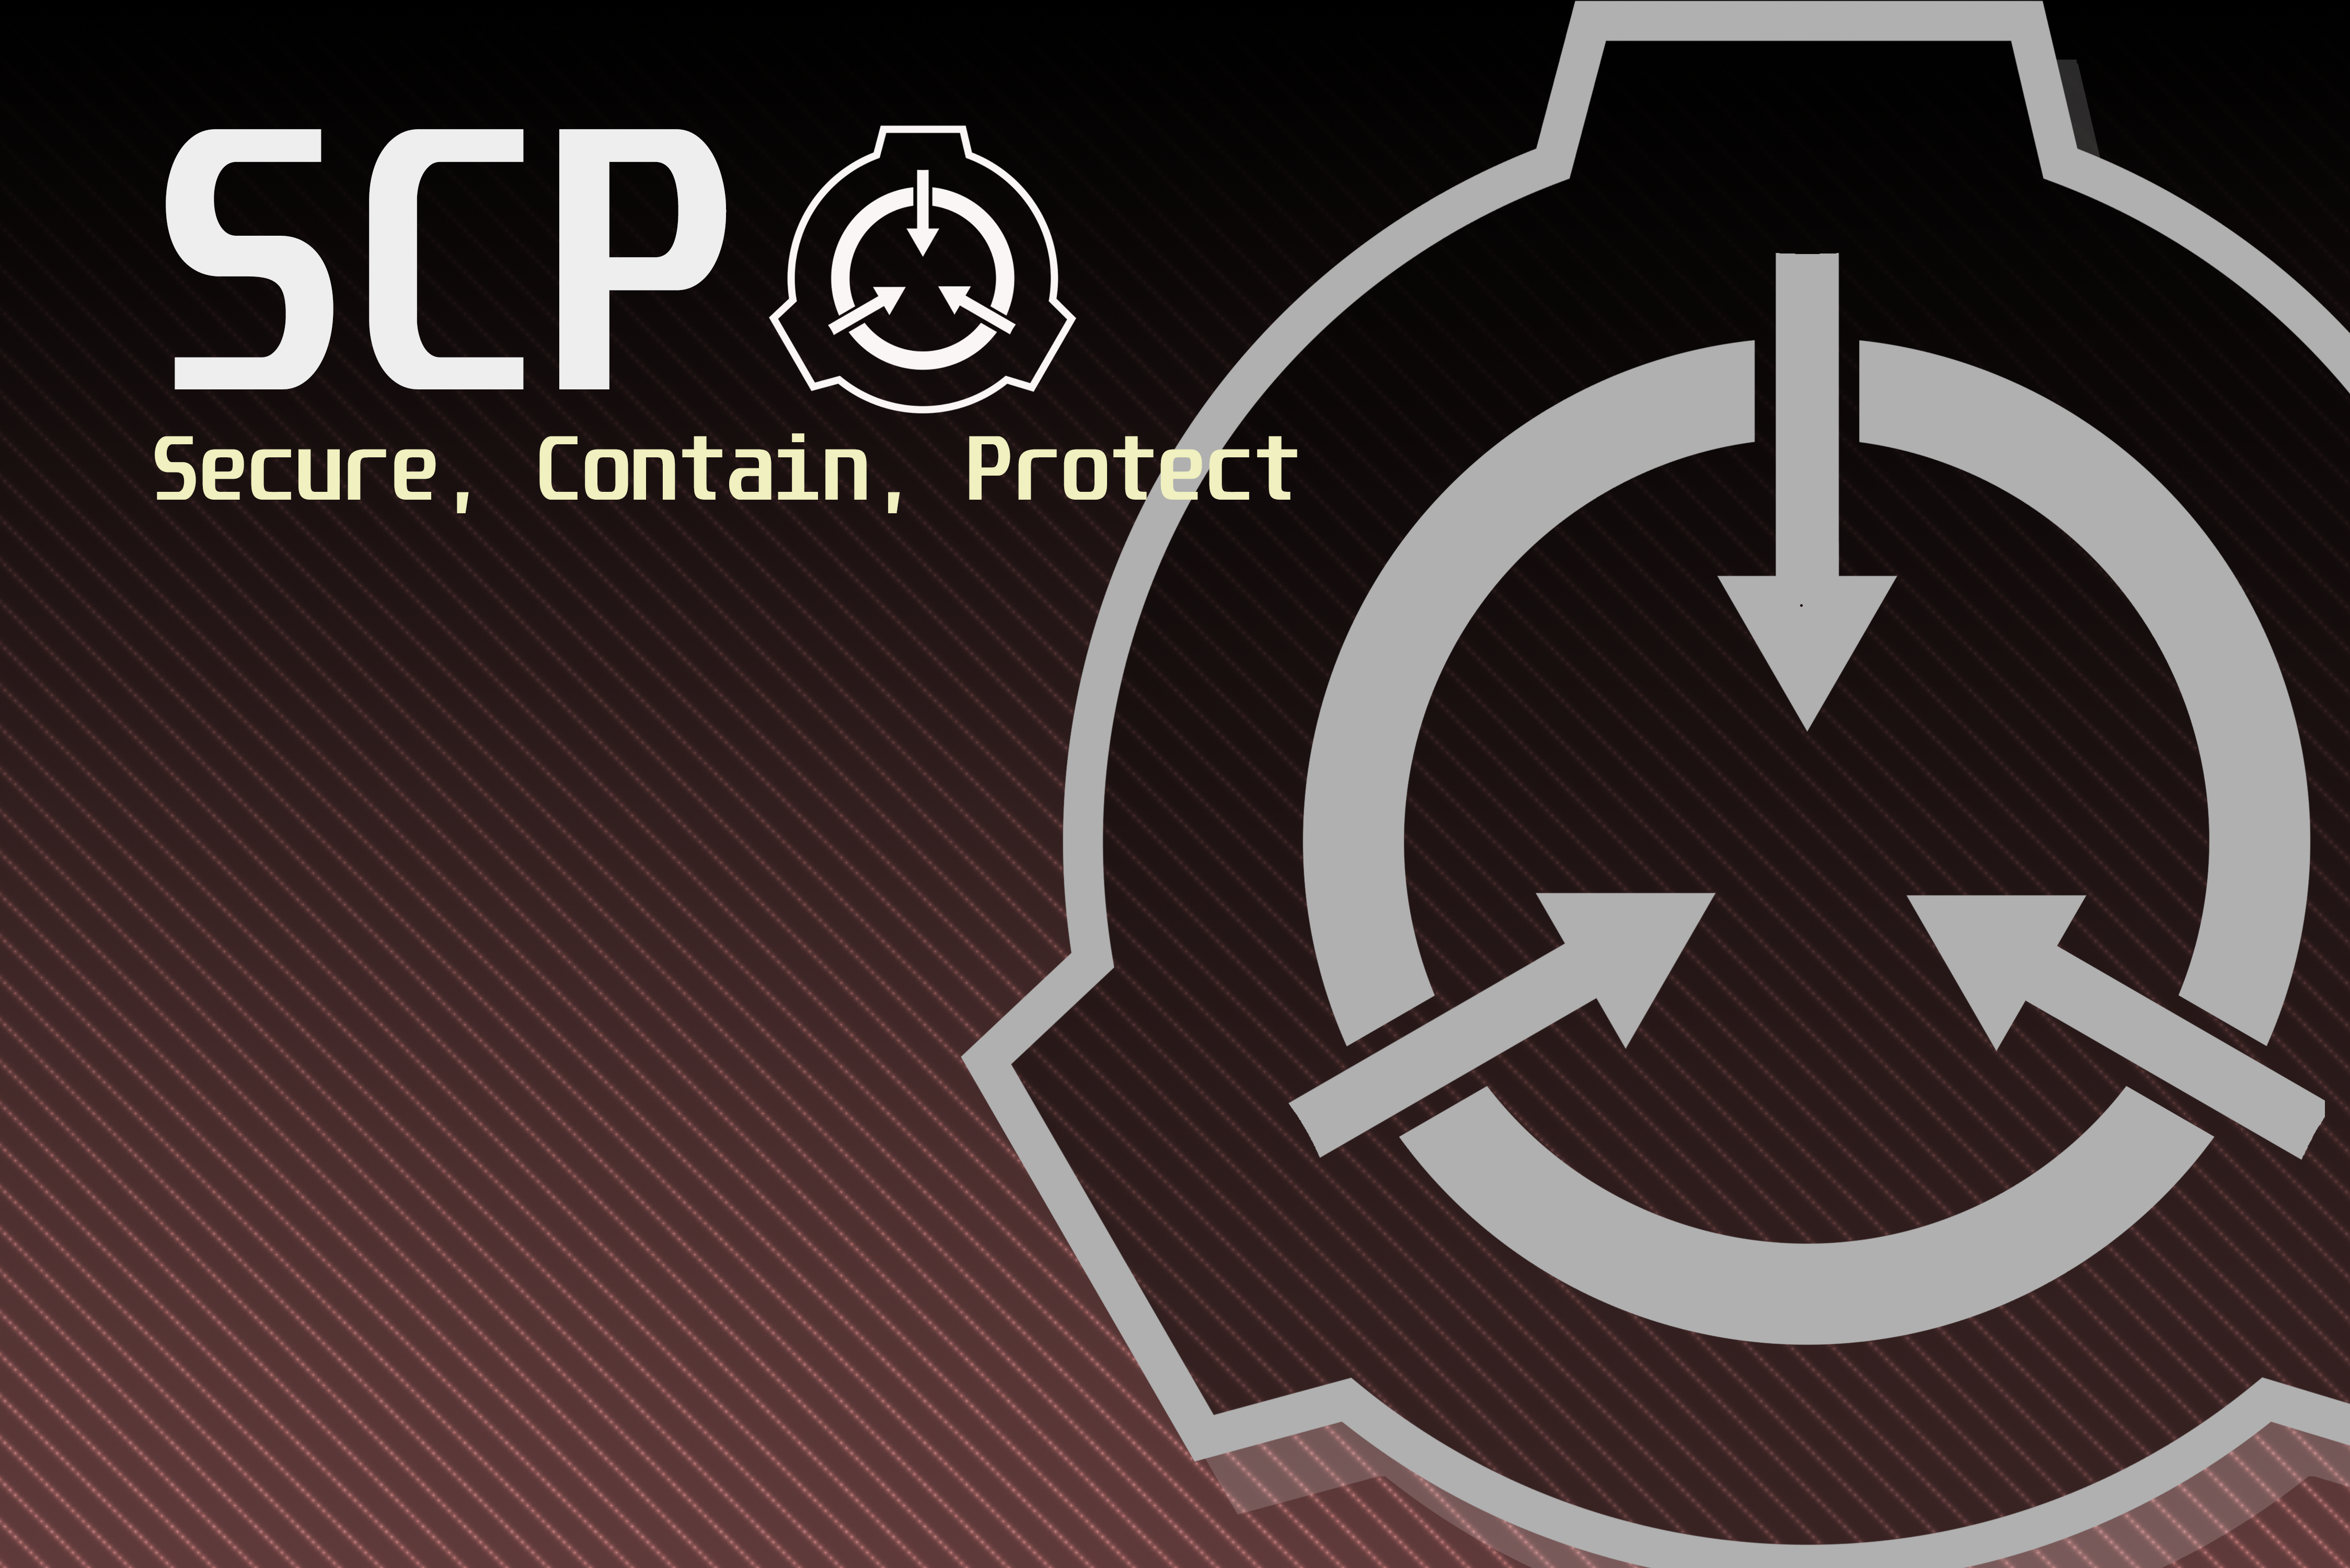 SCP-Ccard-Wiki-01.png